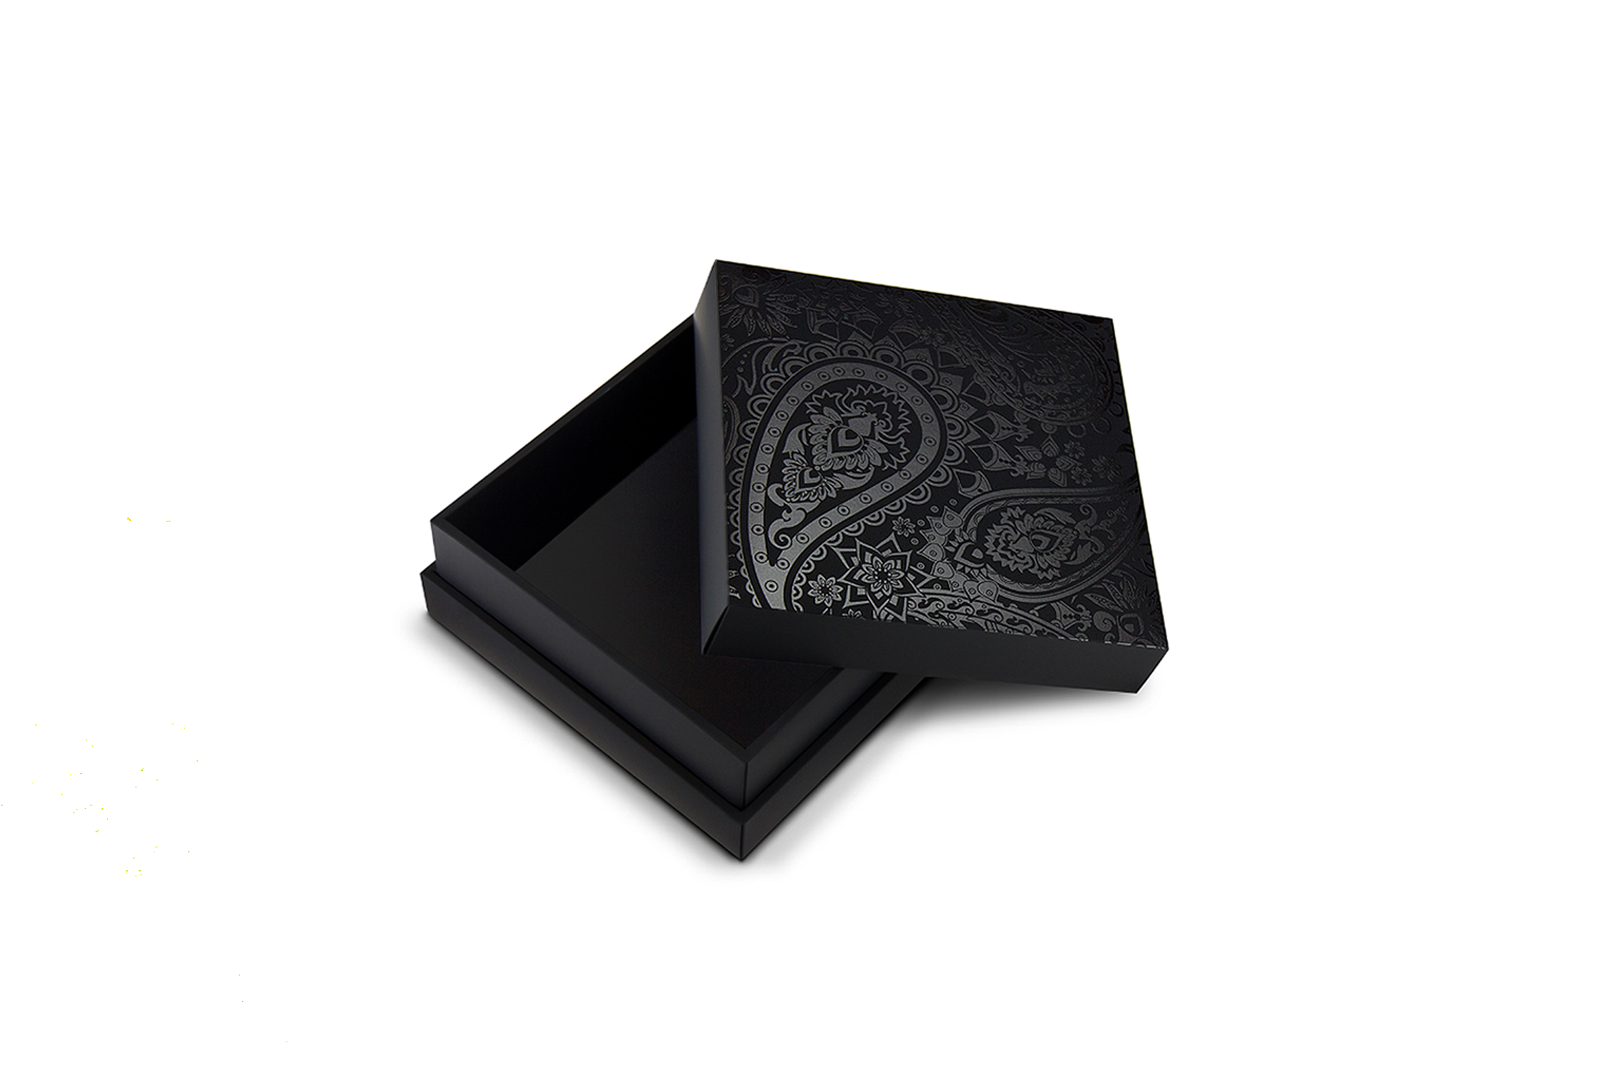 Black removable lid box with pattern printed on the cover of the box